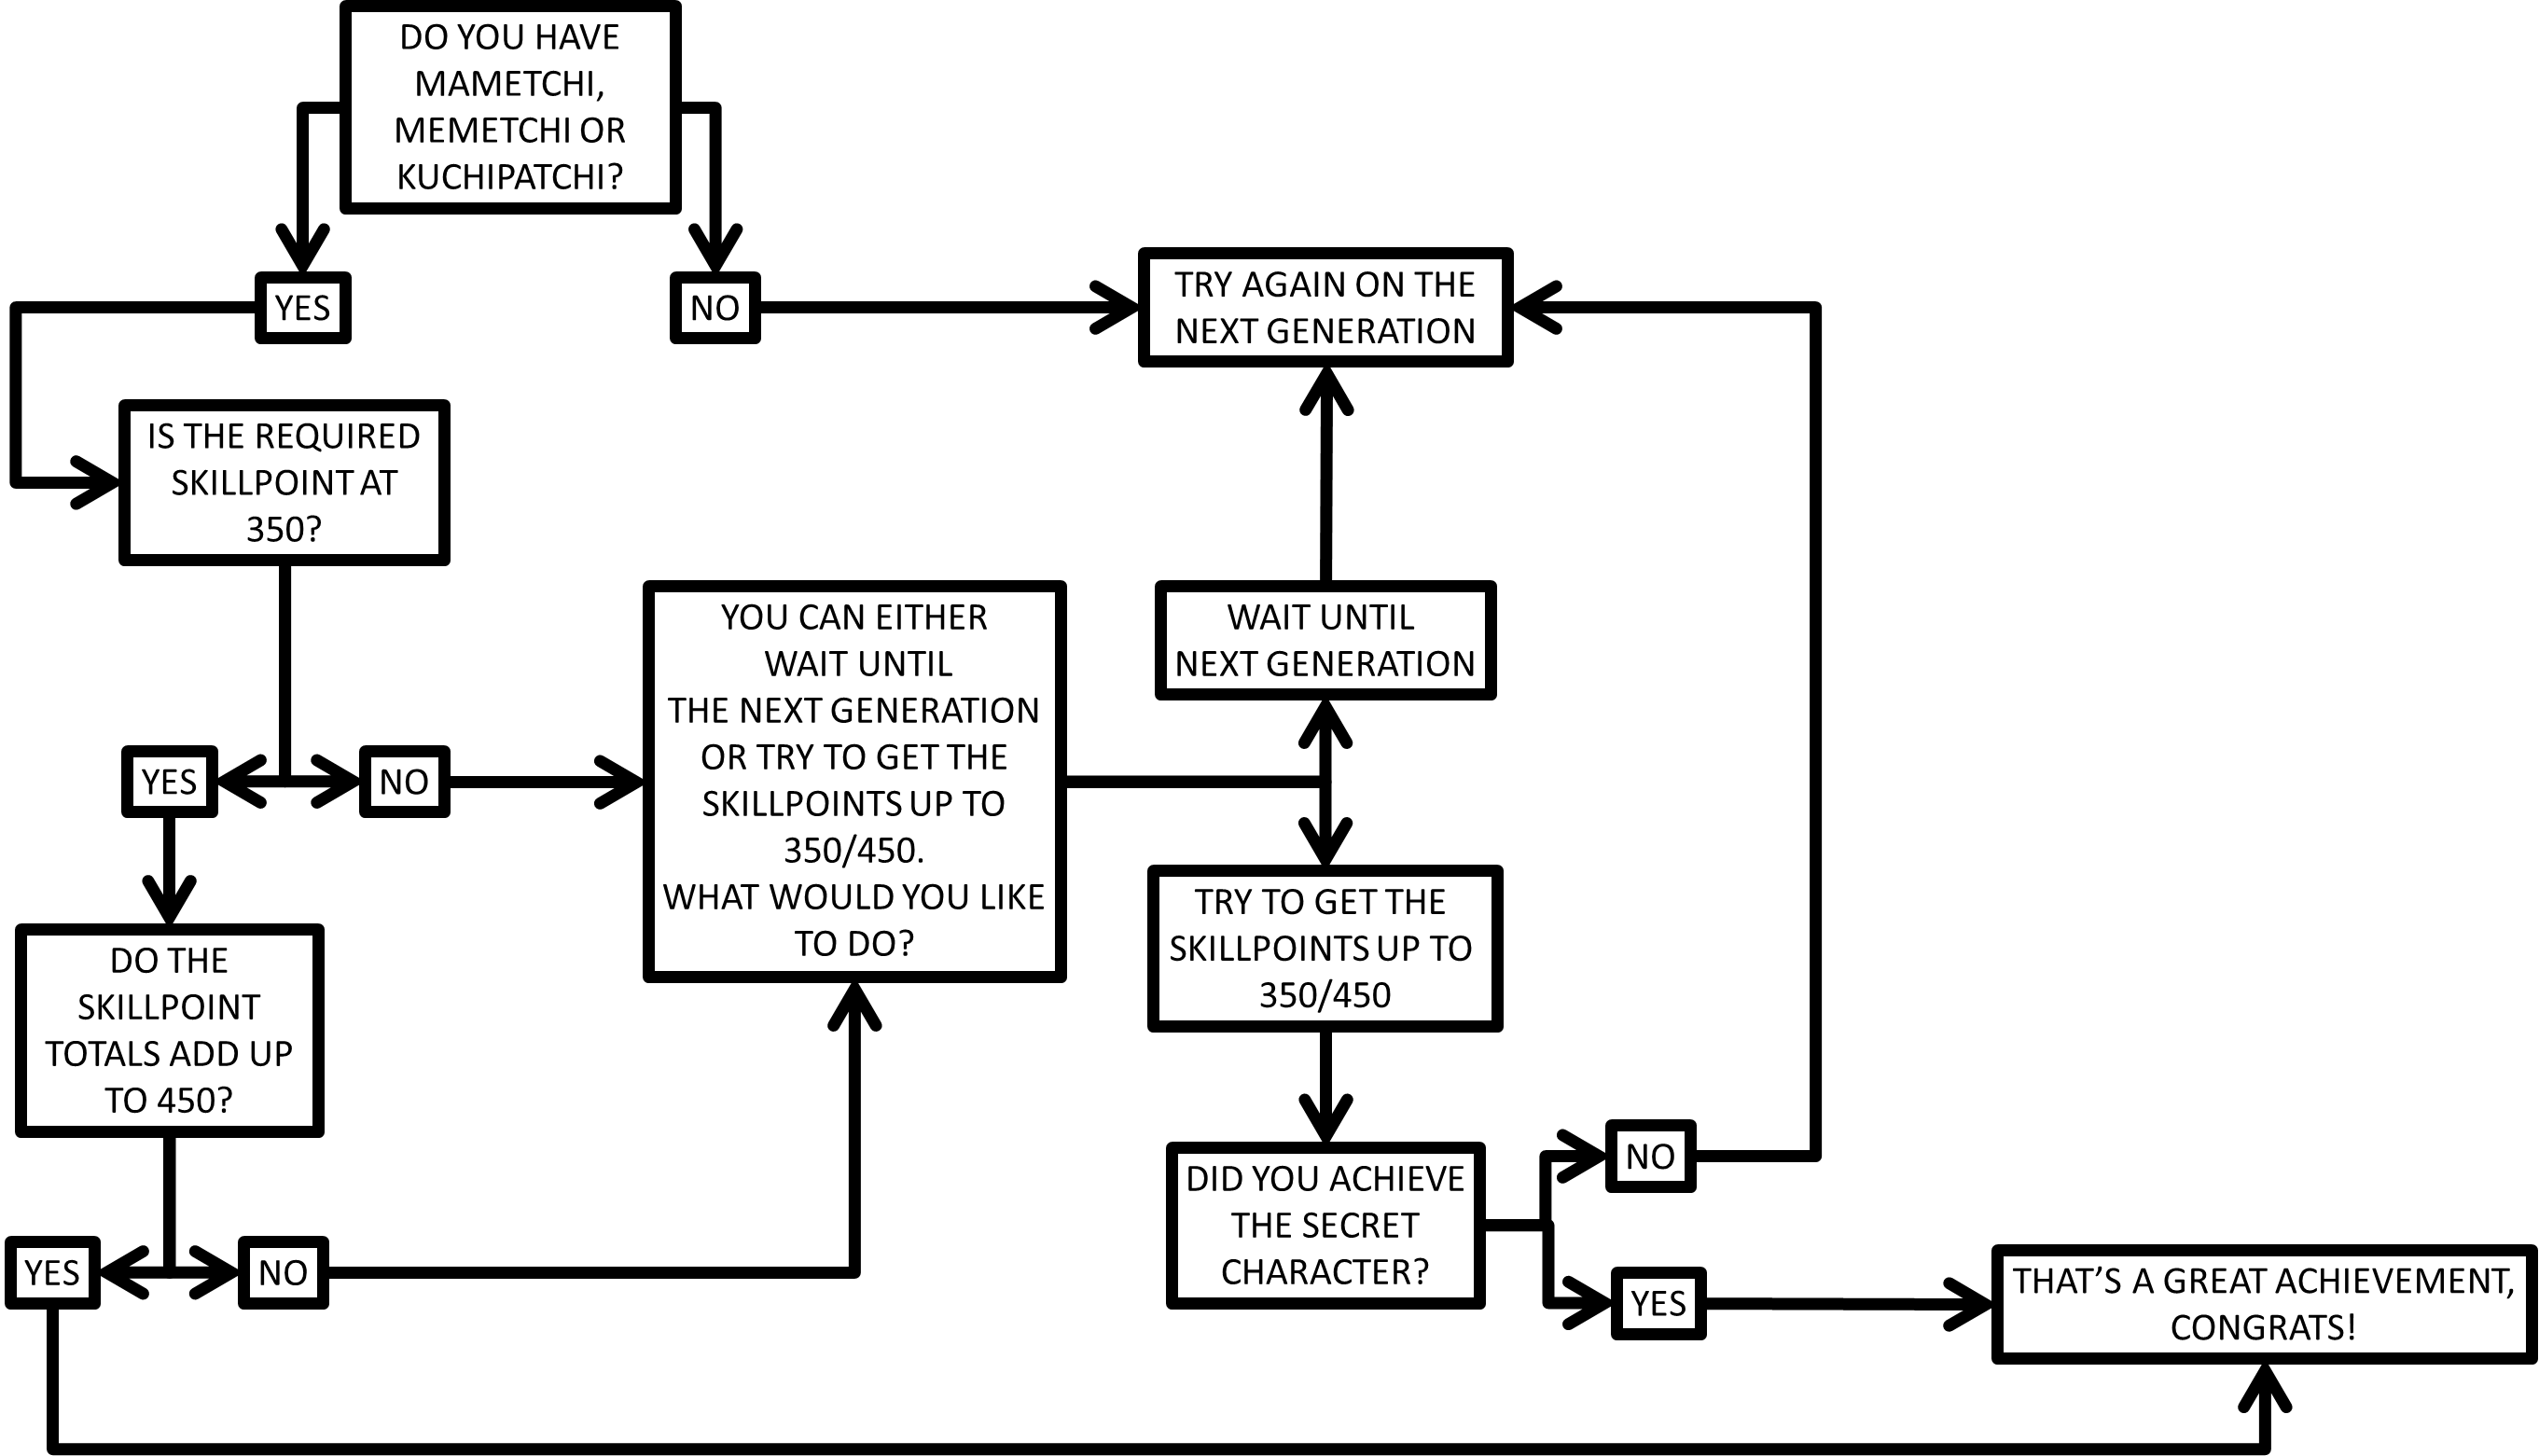 V4_secret_character_flow_chart.png